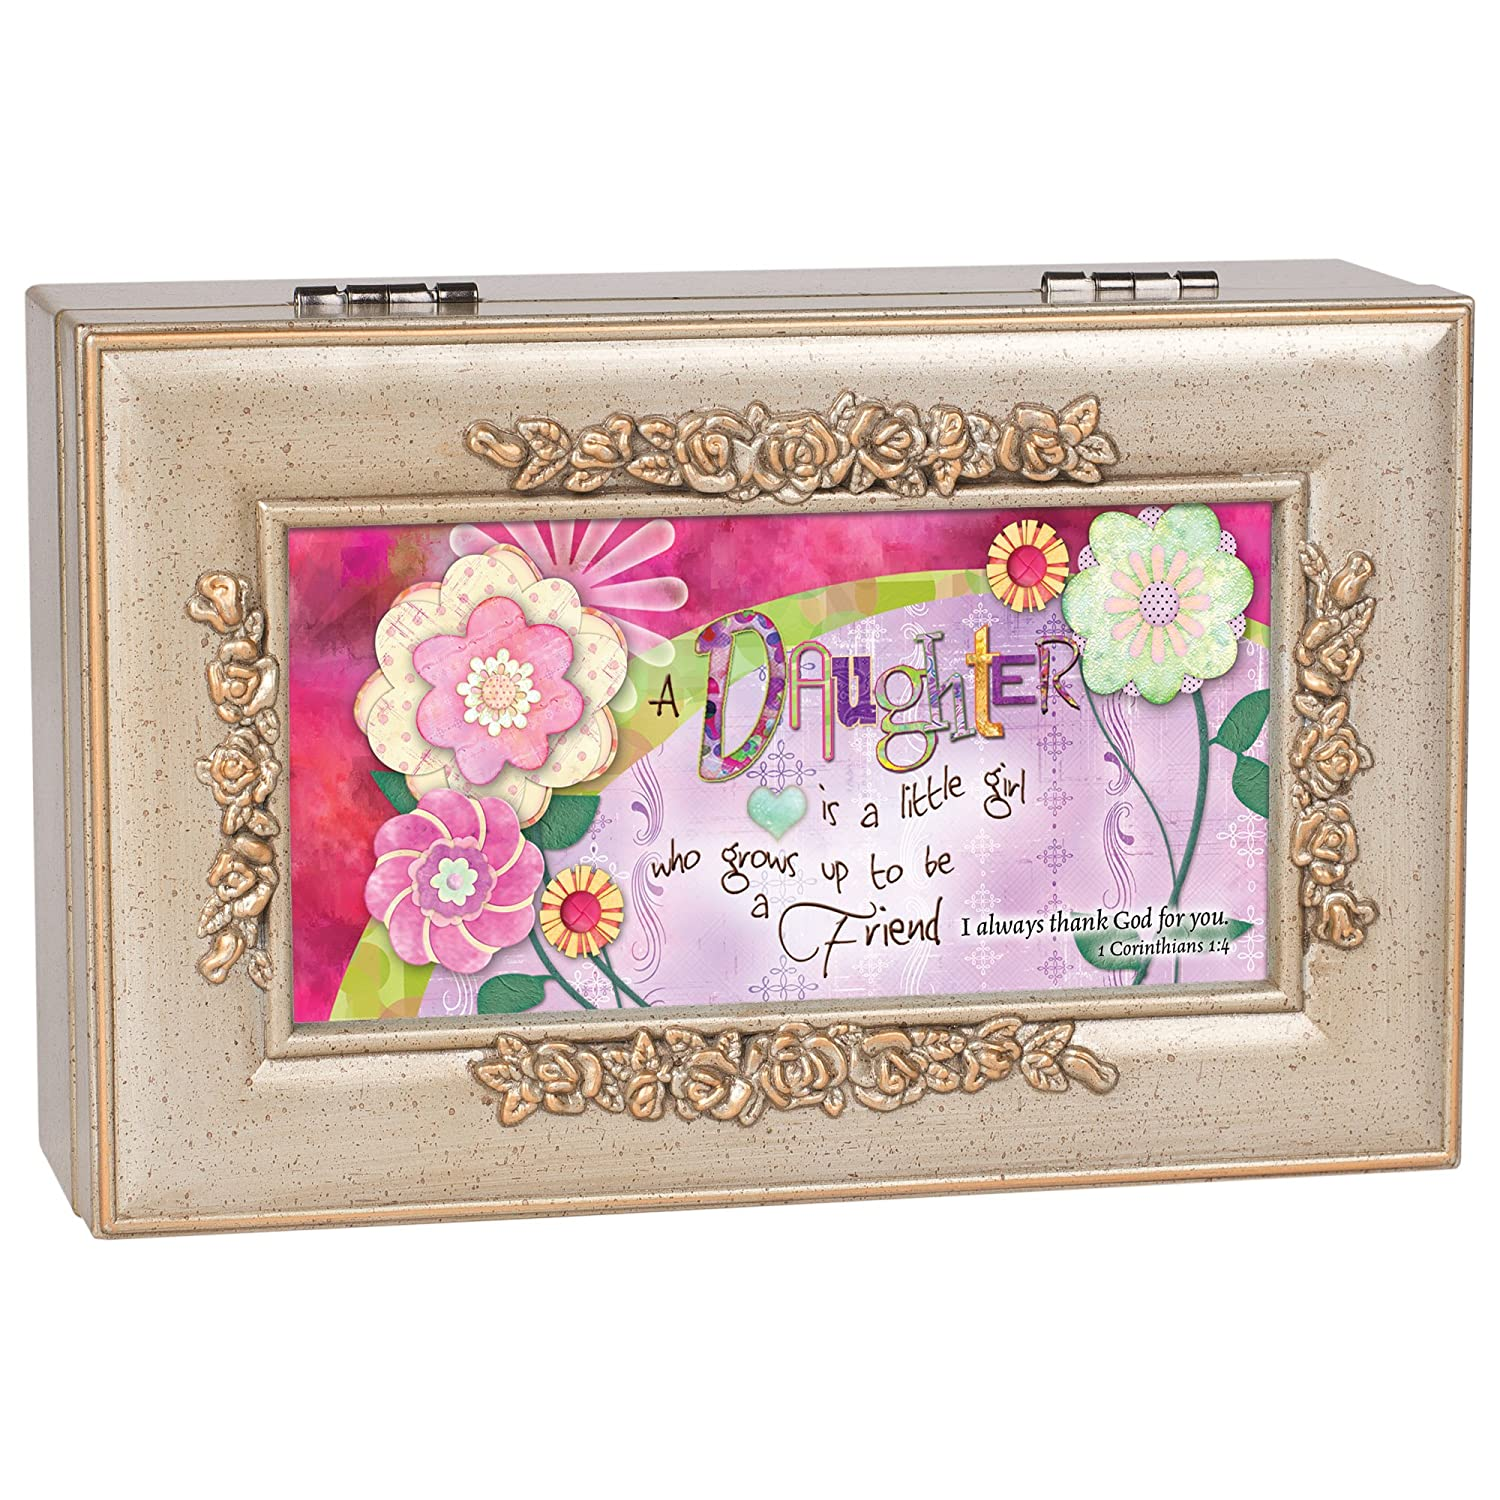 Cottage Garden Daughter Champagne Silver Inspirational Petite Rose Music Box Plays Amazing Grace